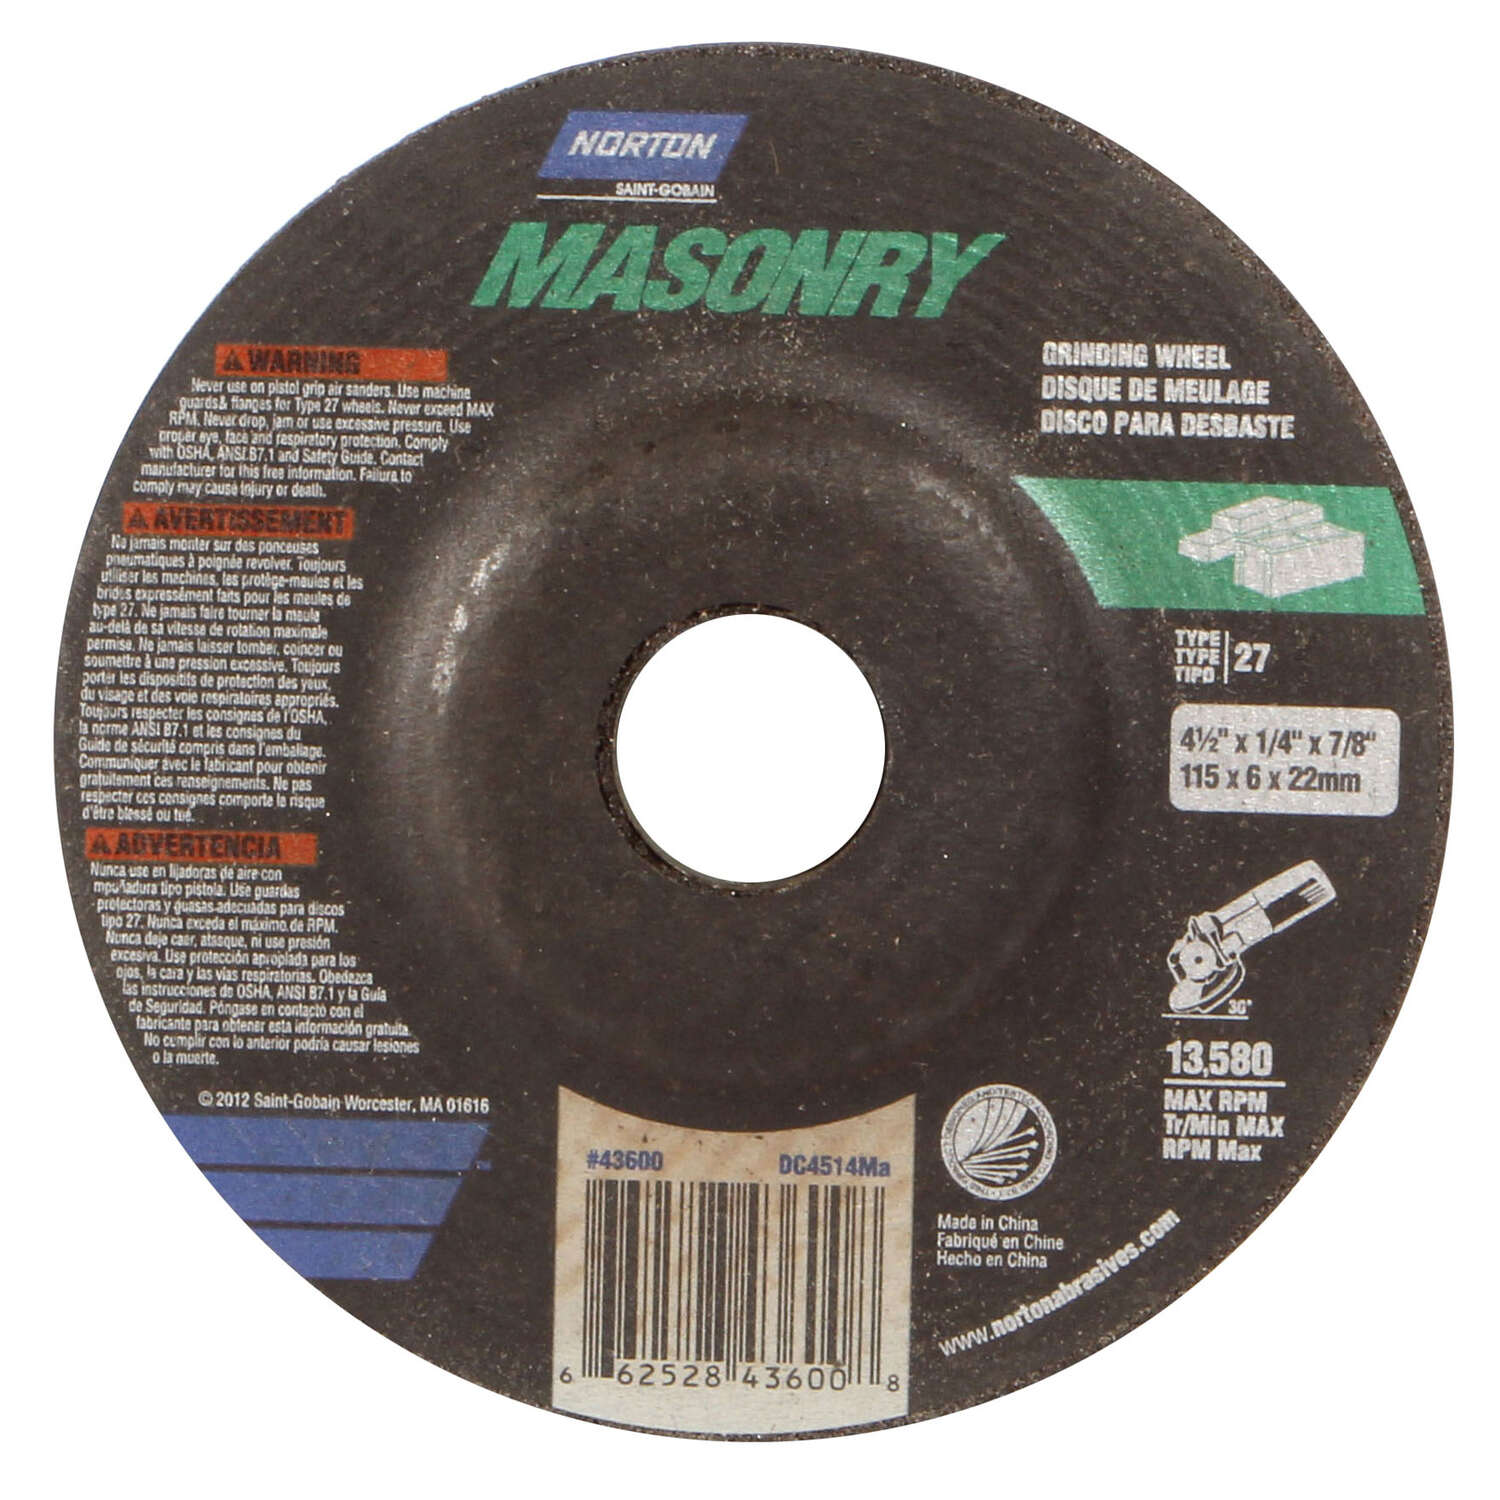 Norton  Masonry  4-1/2 in. Dia. x 1/4 in. thick  x 7/8 in.   Grinding Wheel  1 pc.